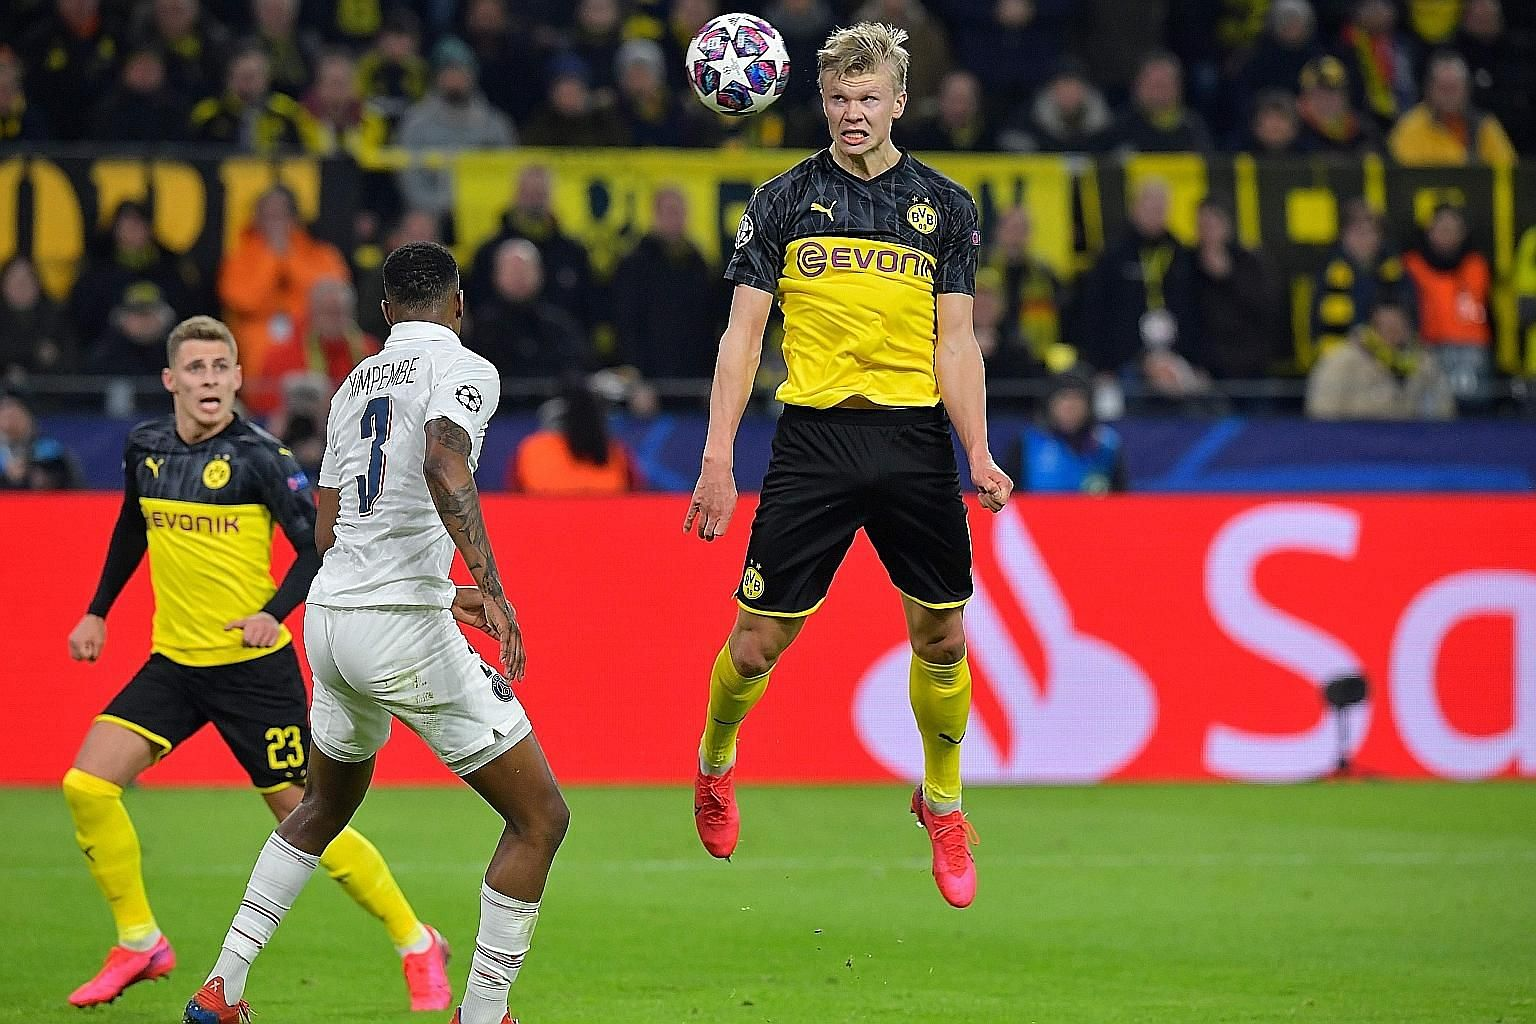 Borussia Dortmund's forward Erling Braut Haaland (centre) heading the ball next to Paris Saint-Germain's French defender Presnel Kimpembe during the first leg of their Champions League last-16 tie in Germany on Tuesday. PHOTO: AGENCE FRANCE-PRESSE